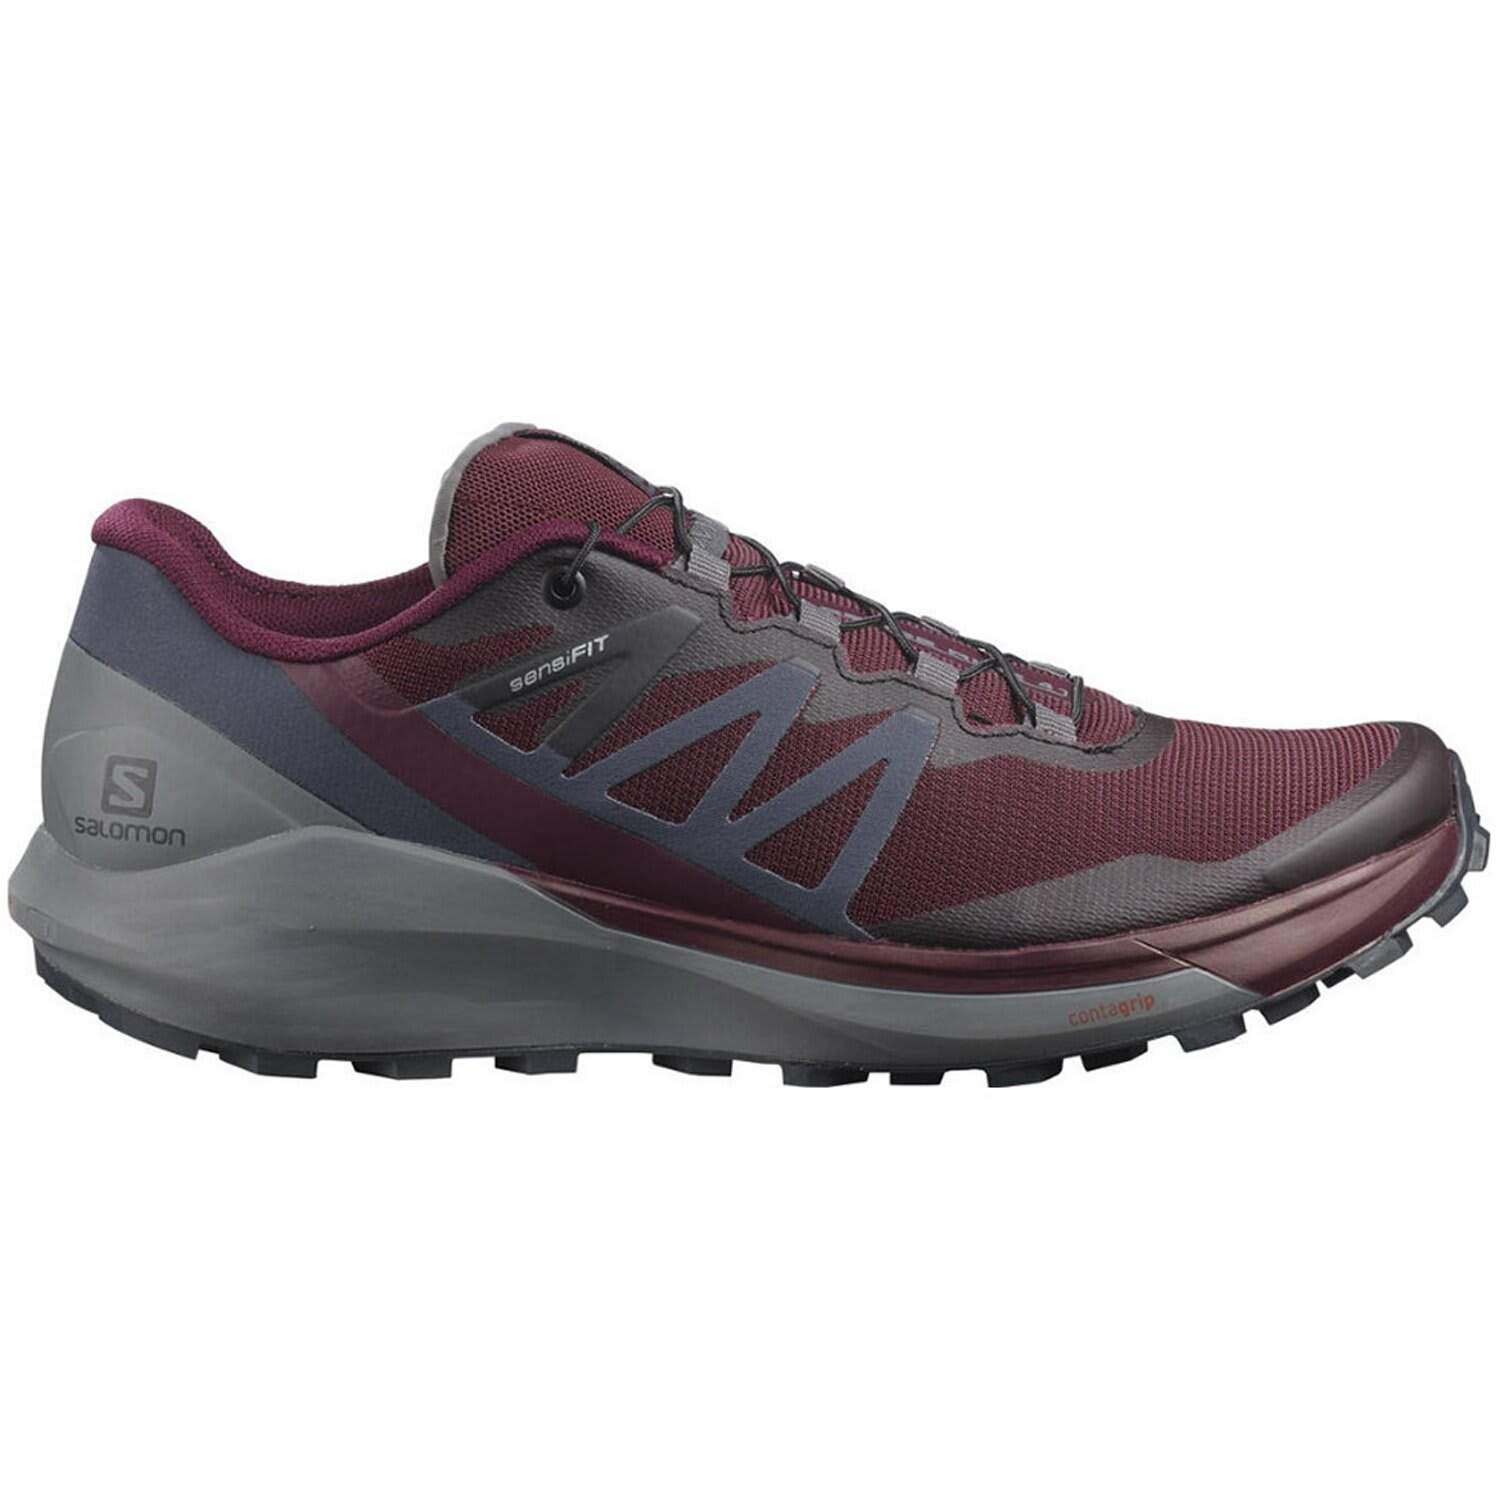 Salomon Sense Ride 4 Women's (Wine Tasting/Quiet Shade/Ebony)